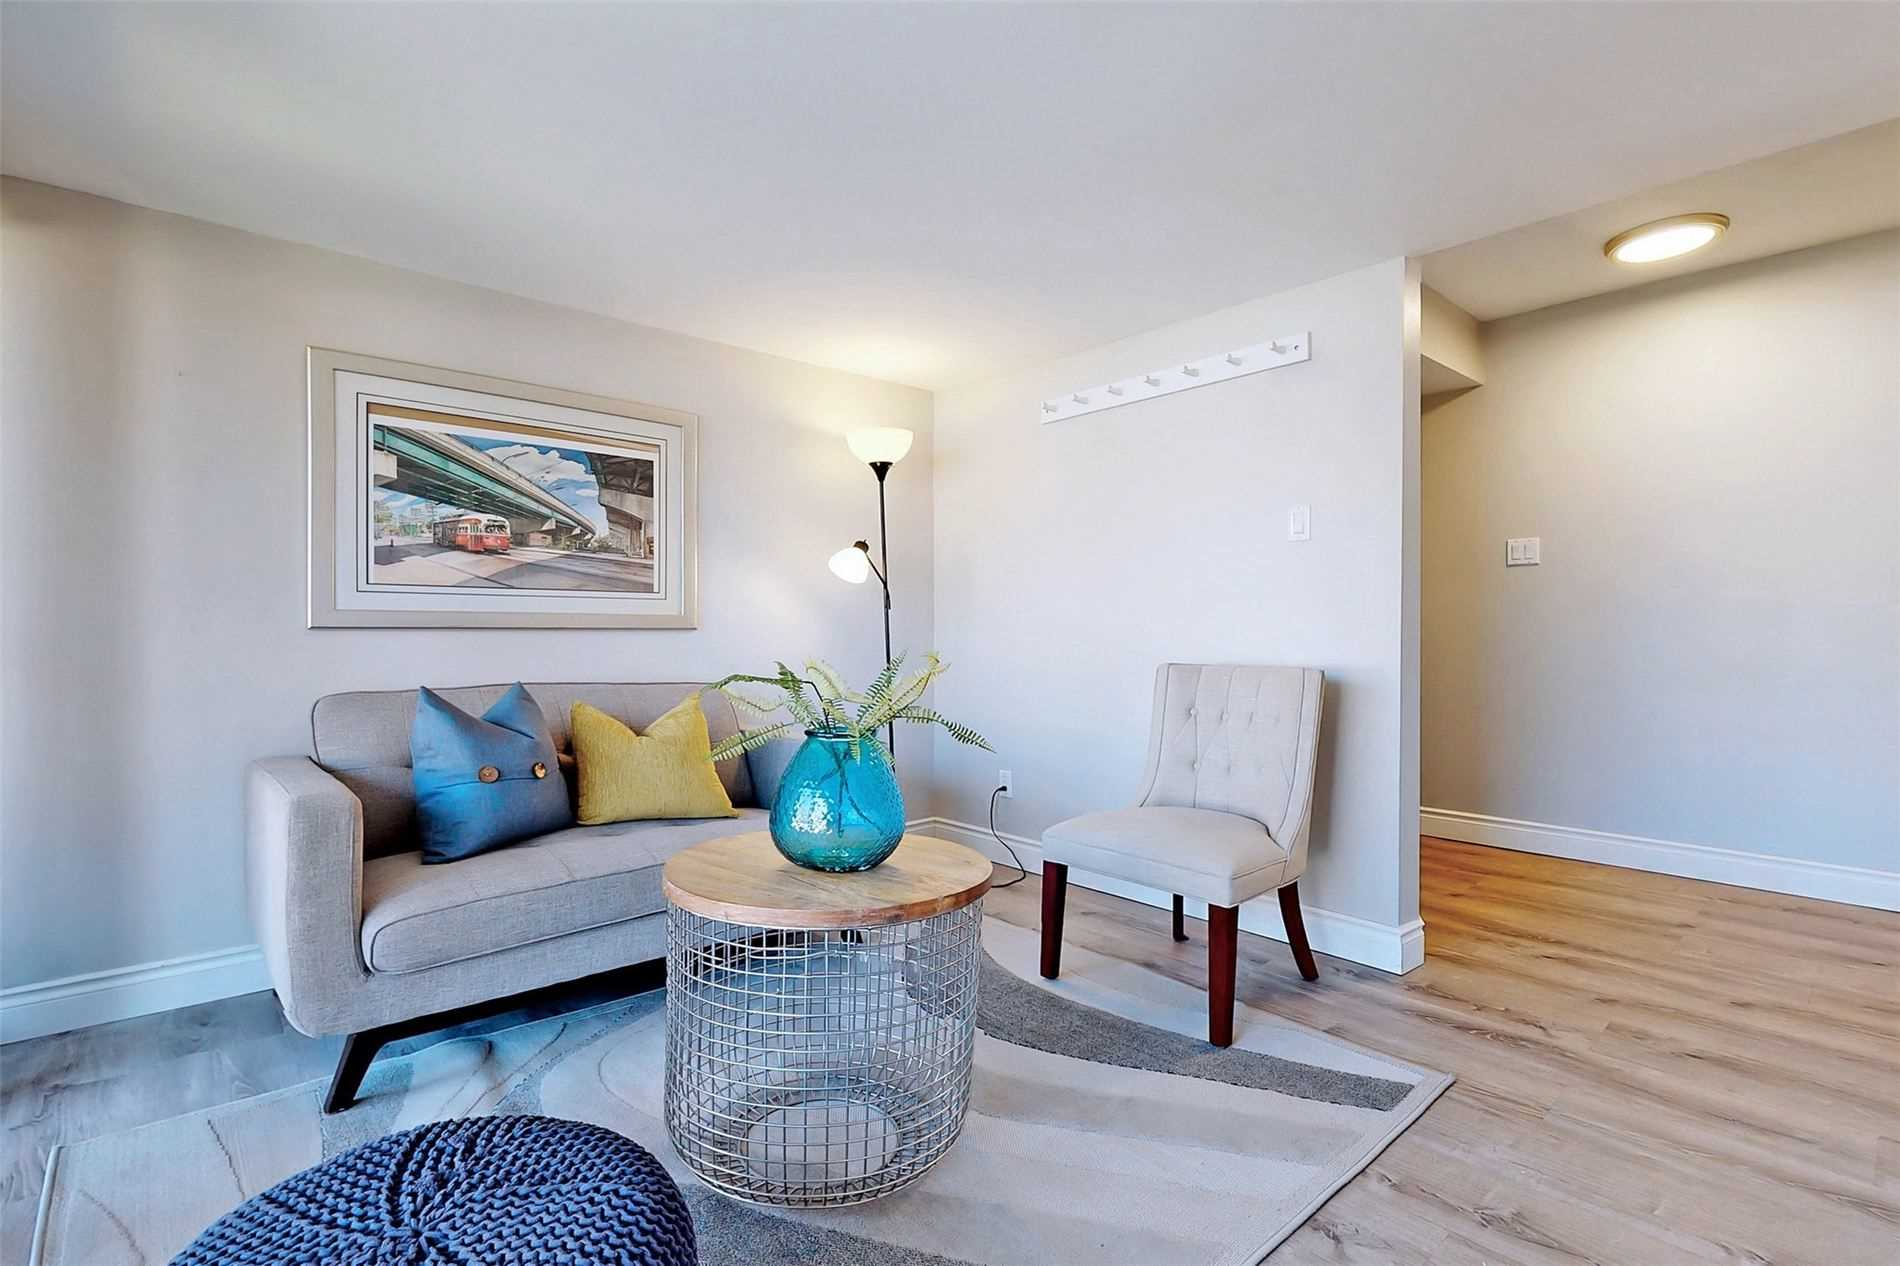 Image 36 of 40 showing inside of 3 Bedroom Condo Townhouse 3-Storey for Sale at 14 Cumberland Lane Unit# 7, Ajax L1S7K4